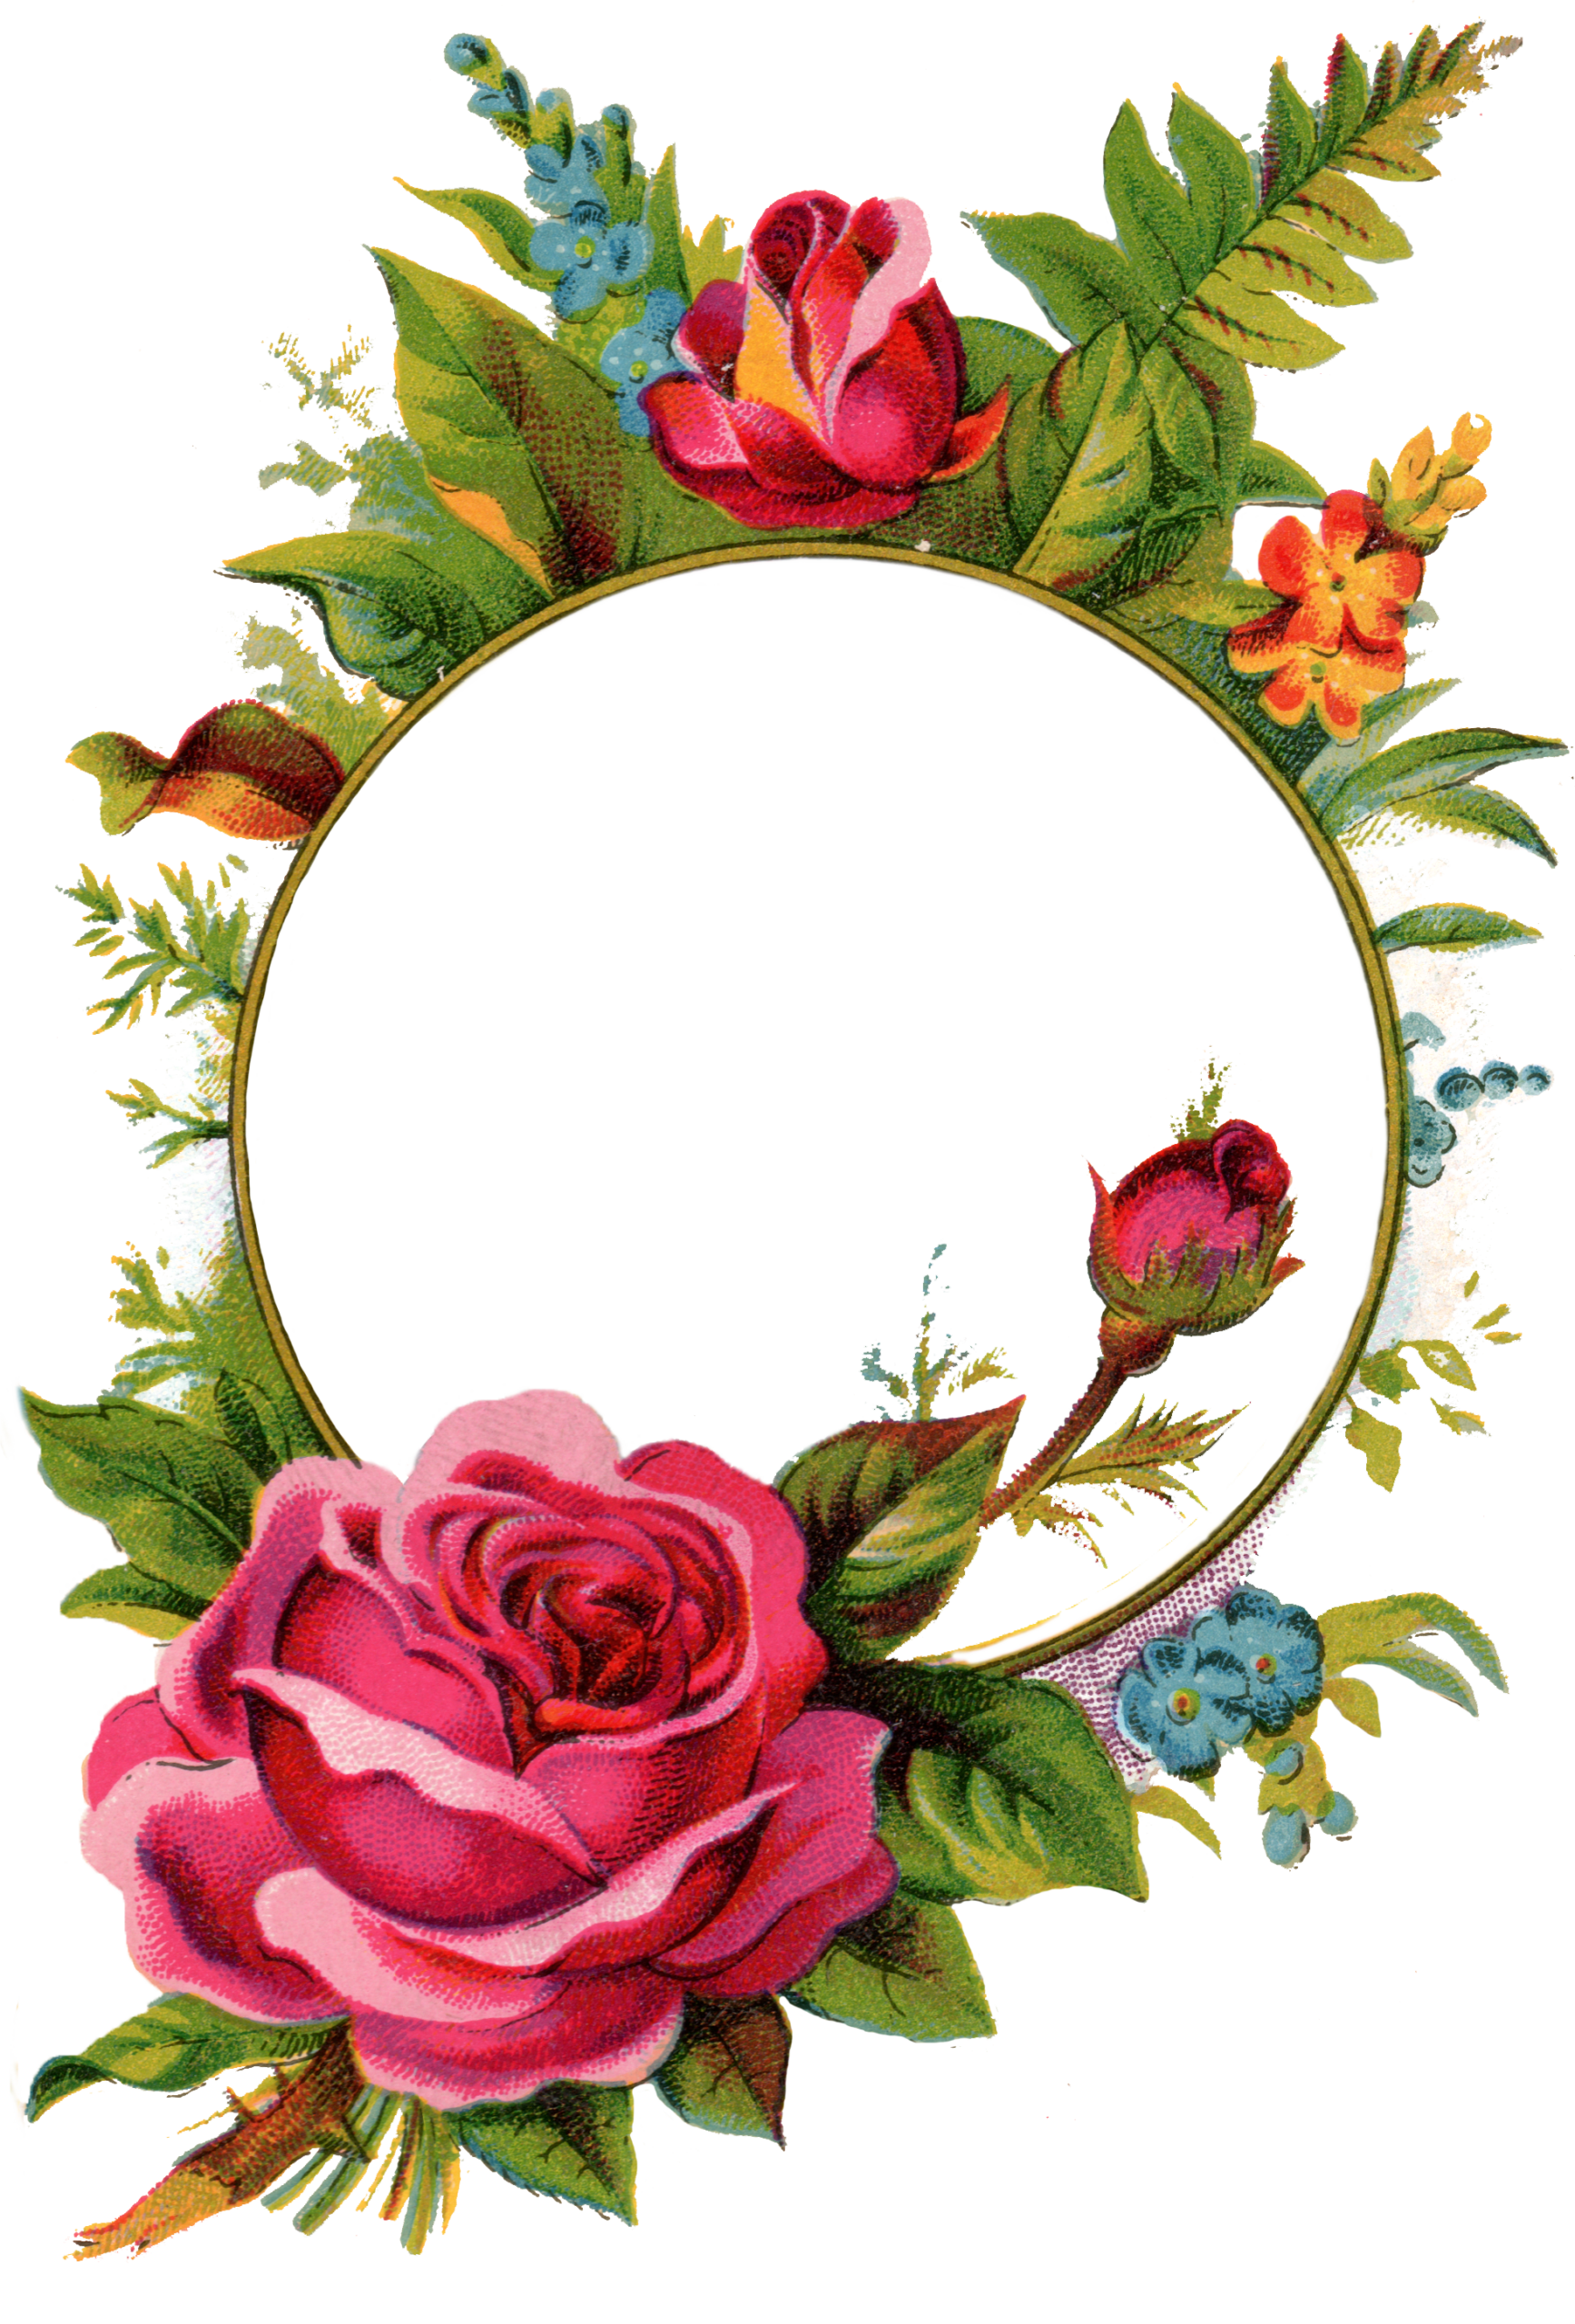 Free Stock Images-Rose Frame - Free Pretty Things For You